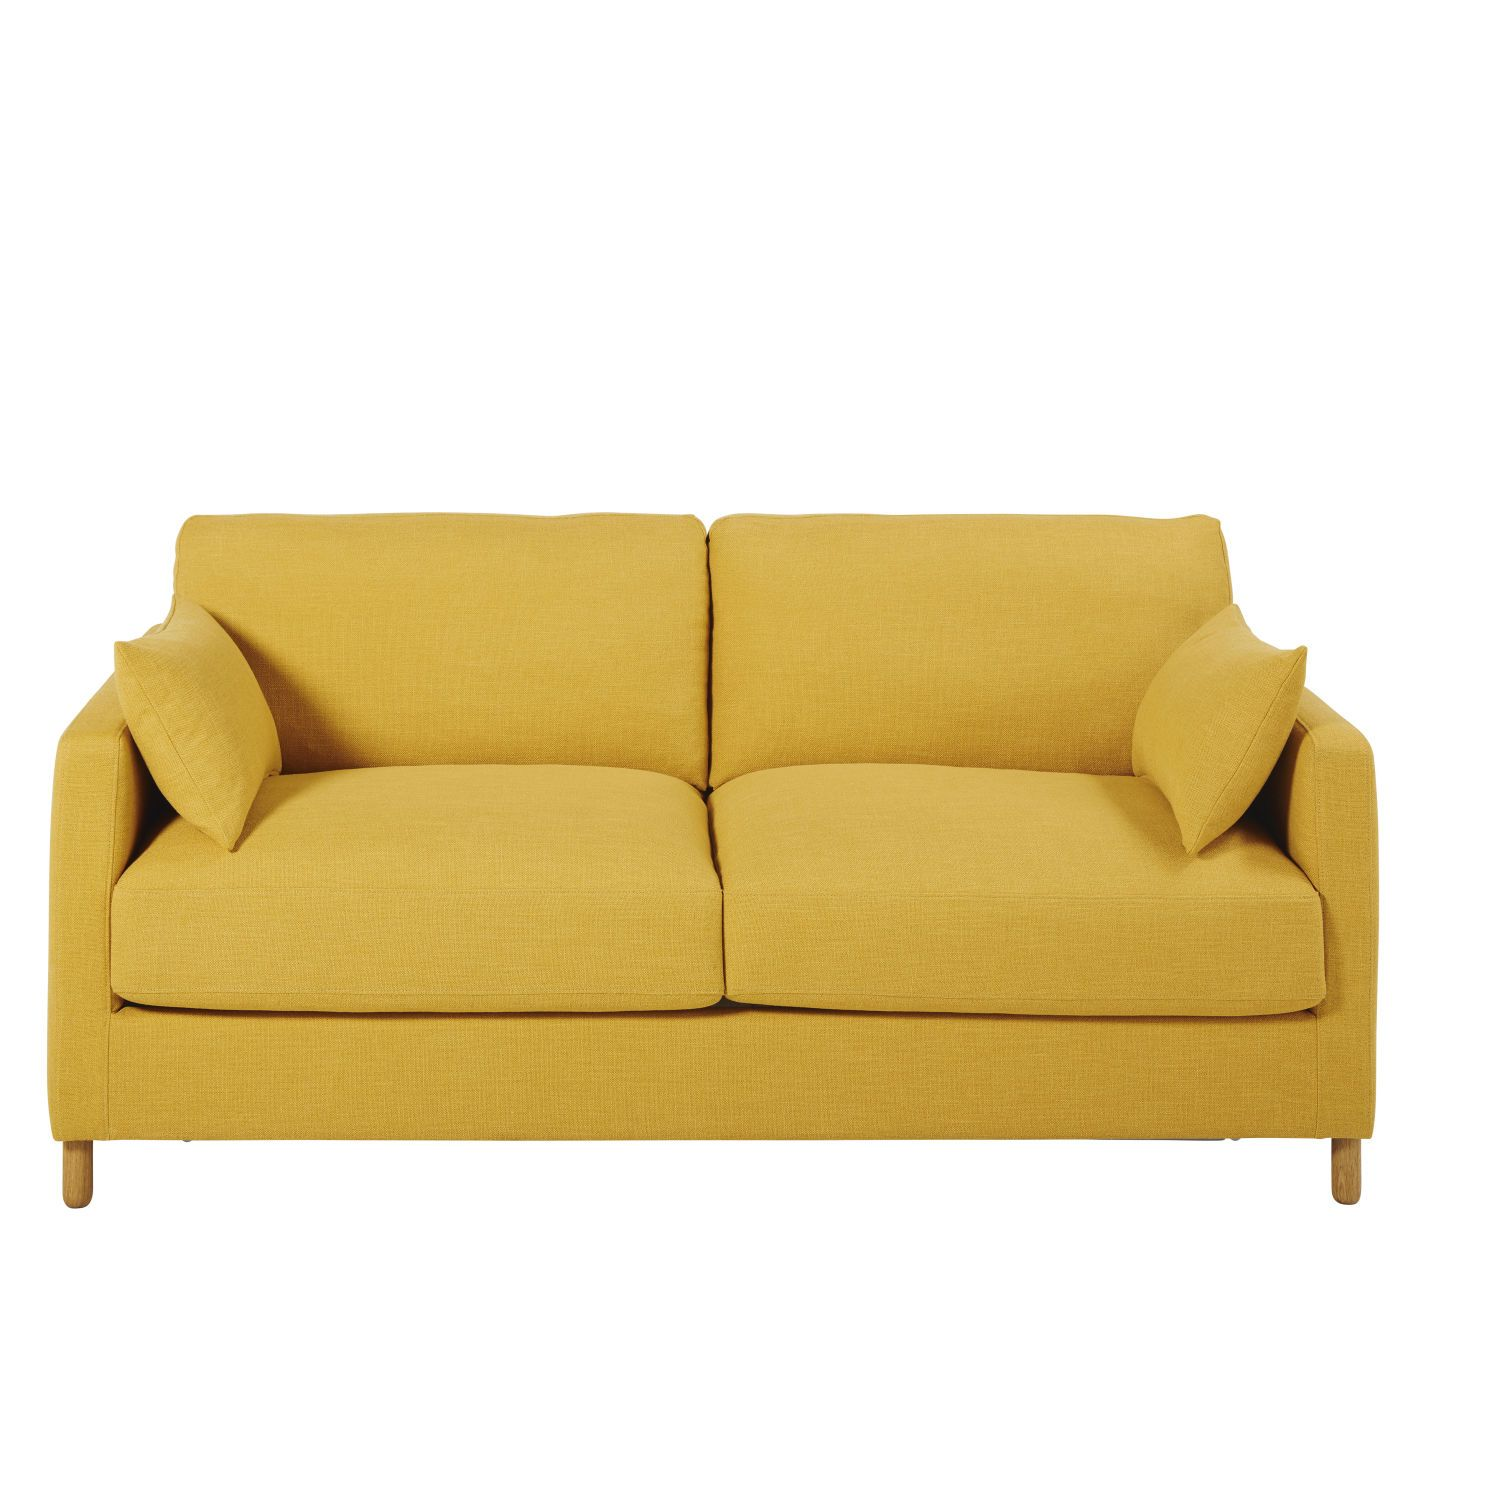 Mustard Yellow 3 Seater Sofa Bed Mattress 10 Cm Maisons Du Monde